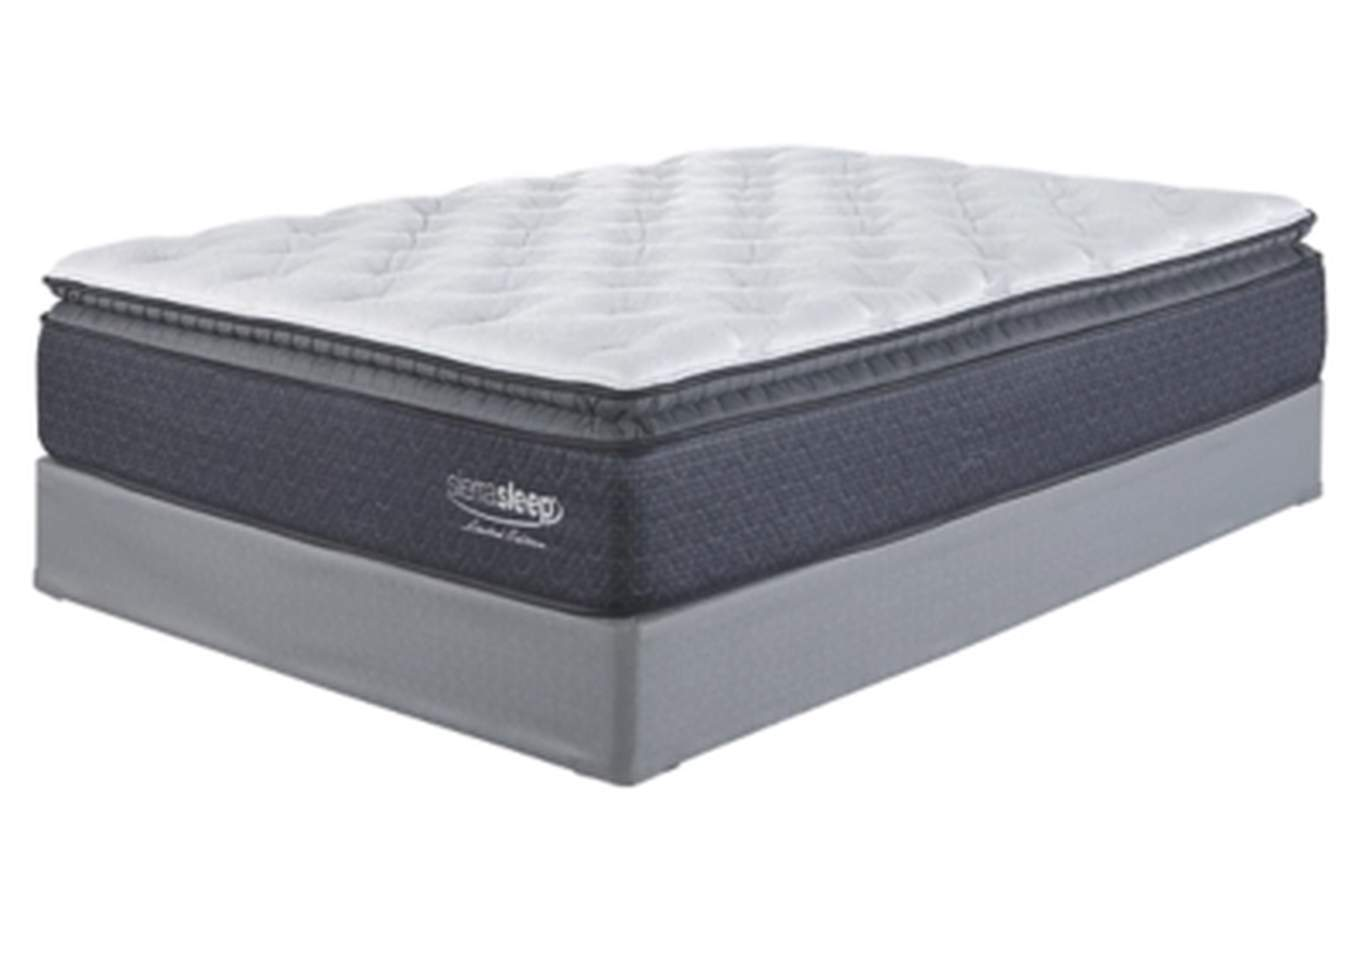 Limited Edition Pillowtop White Twin Mattress,Sierra Sleep